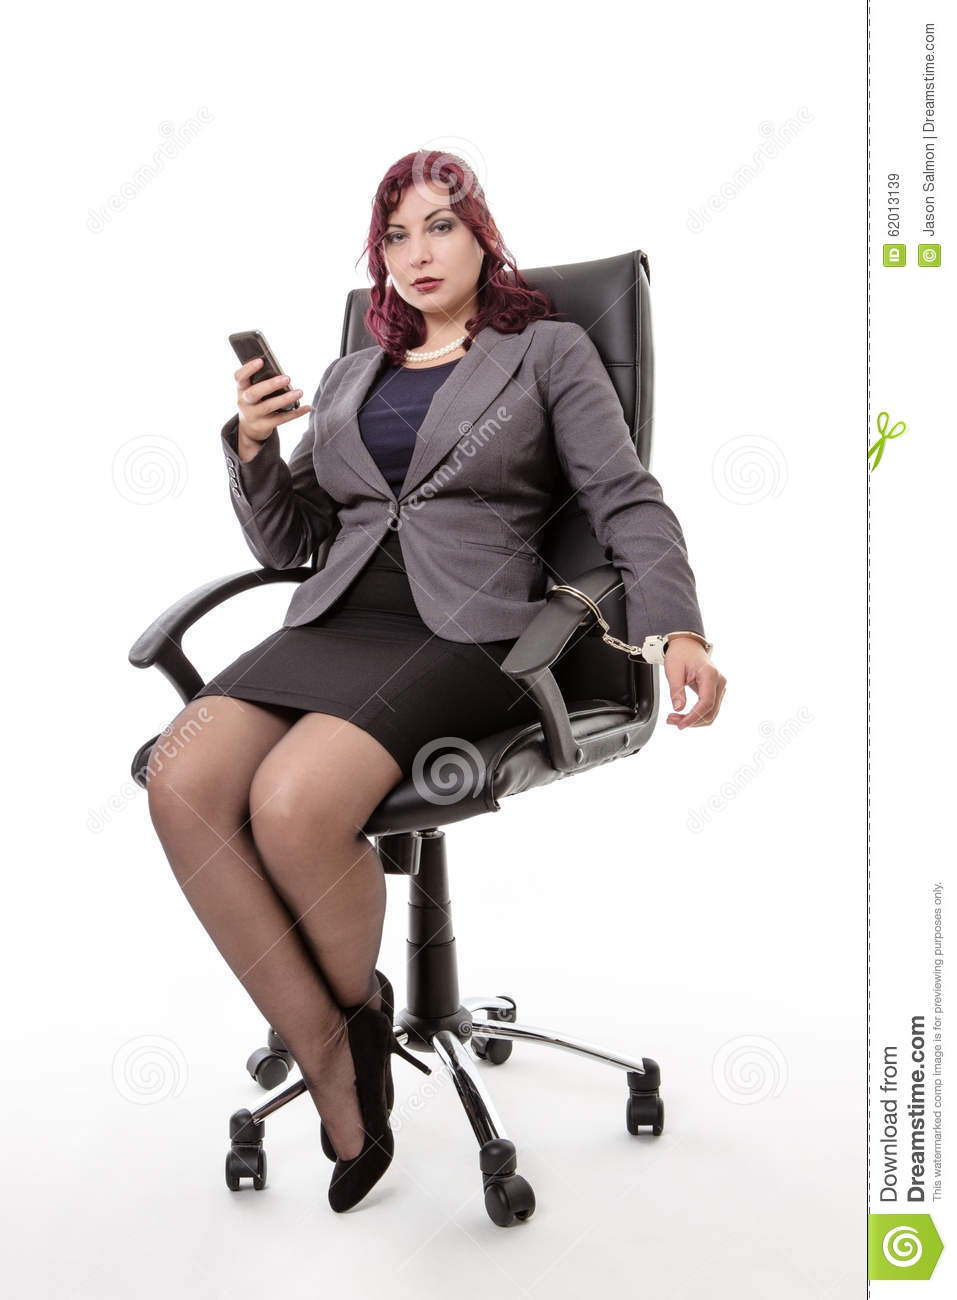 Woman Handcuffed To Office Chair Stock Image - Image of ...  Woman Handcuffe...